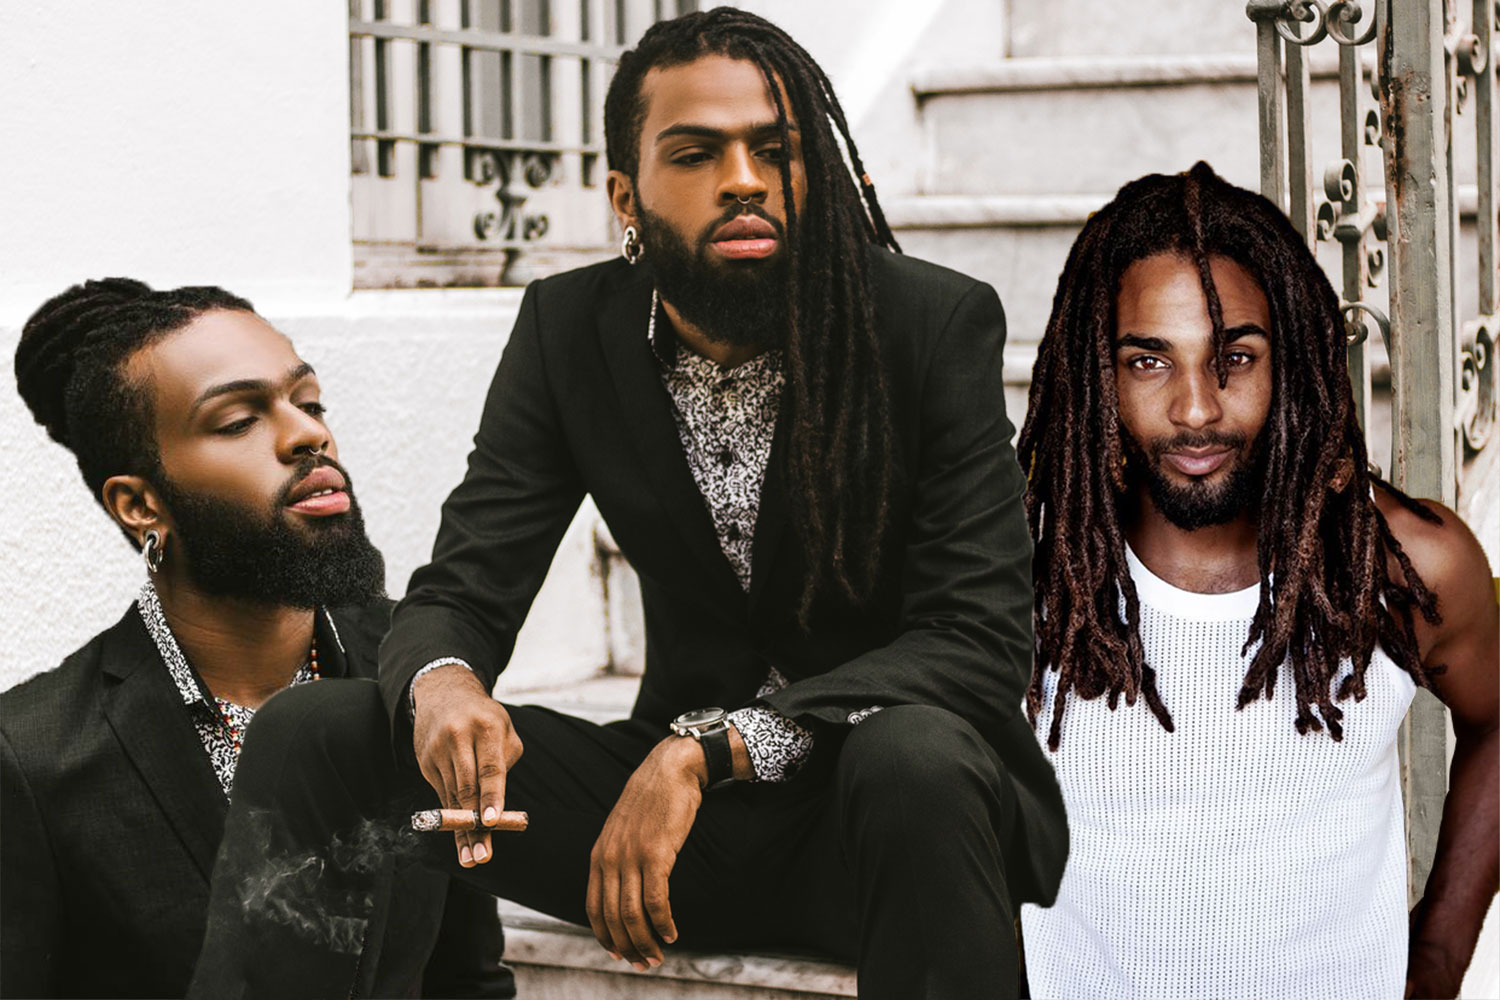 Black Men Dreads Hairstyles For Real Winners Hairstyles